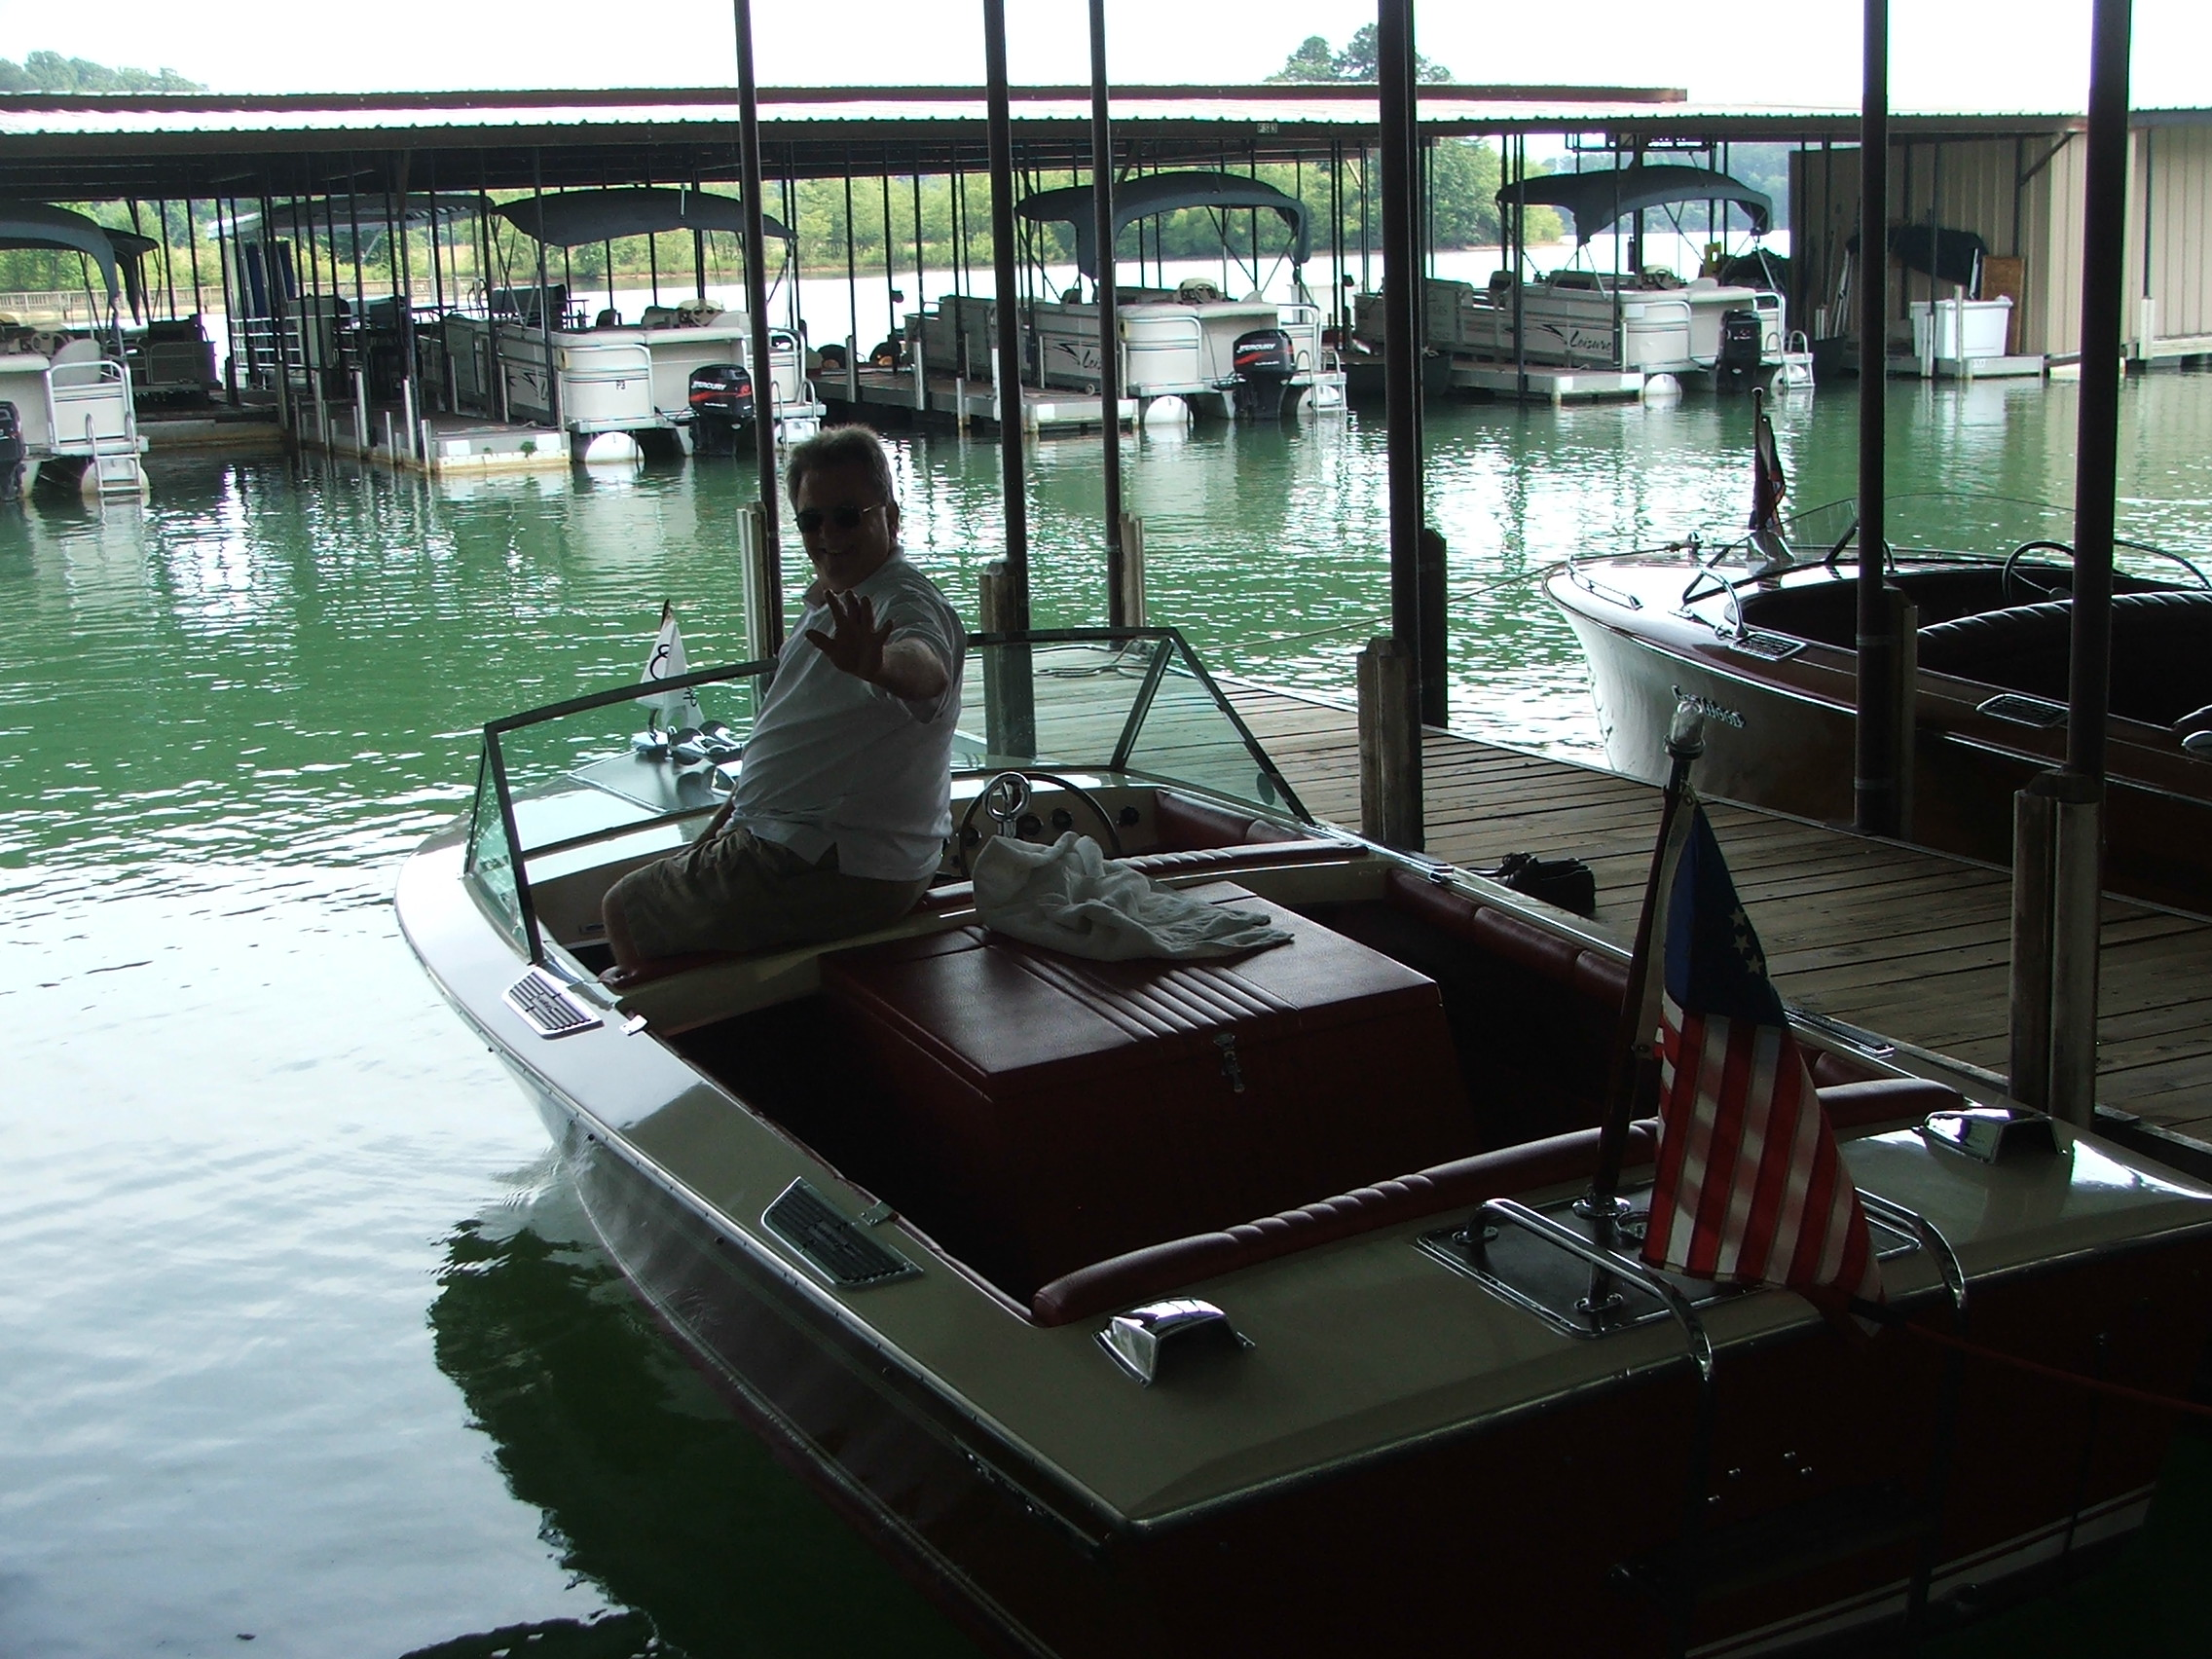 2012 lake chatuge boat event 008